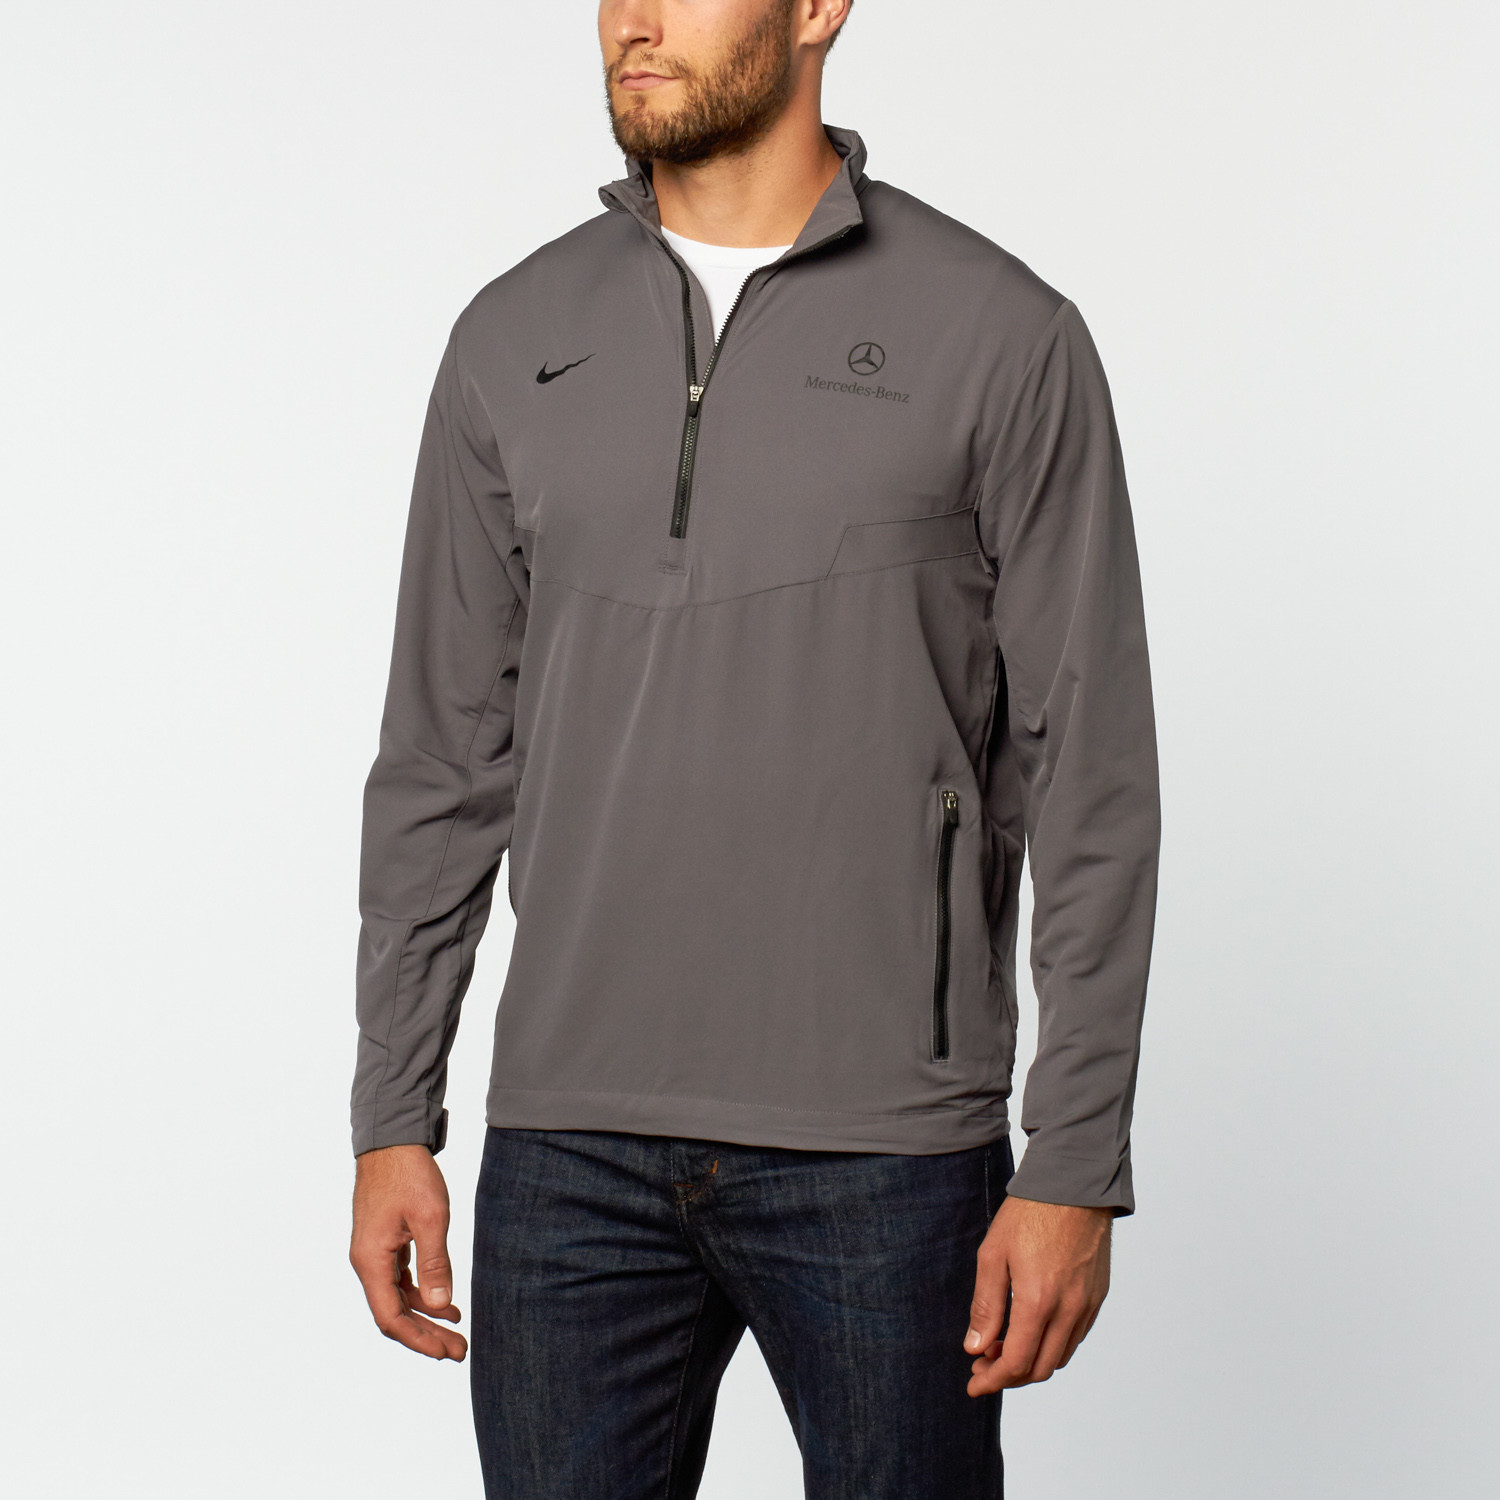 84cc6a2e4 Nike Half Zip Windshirt // Grey (S) - Mercedes-Benz Clothing - Touch ...